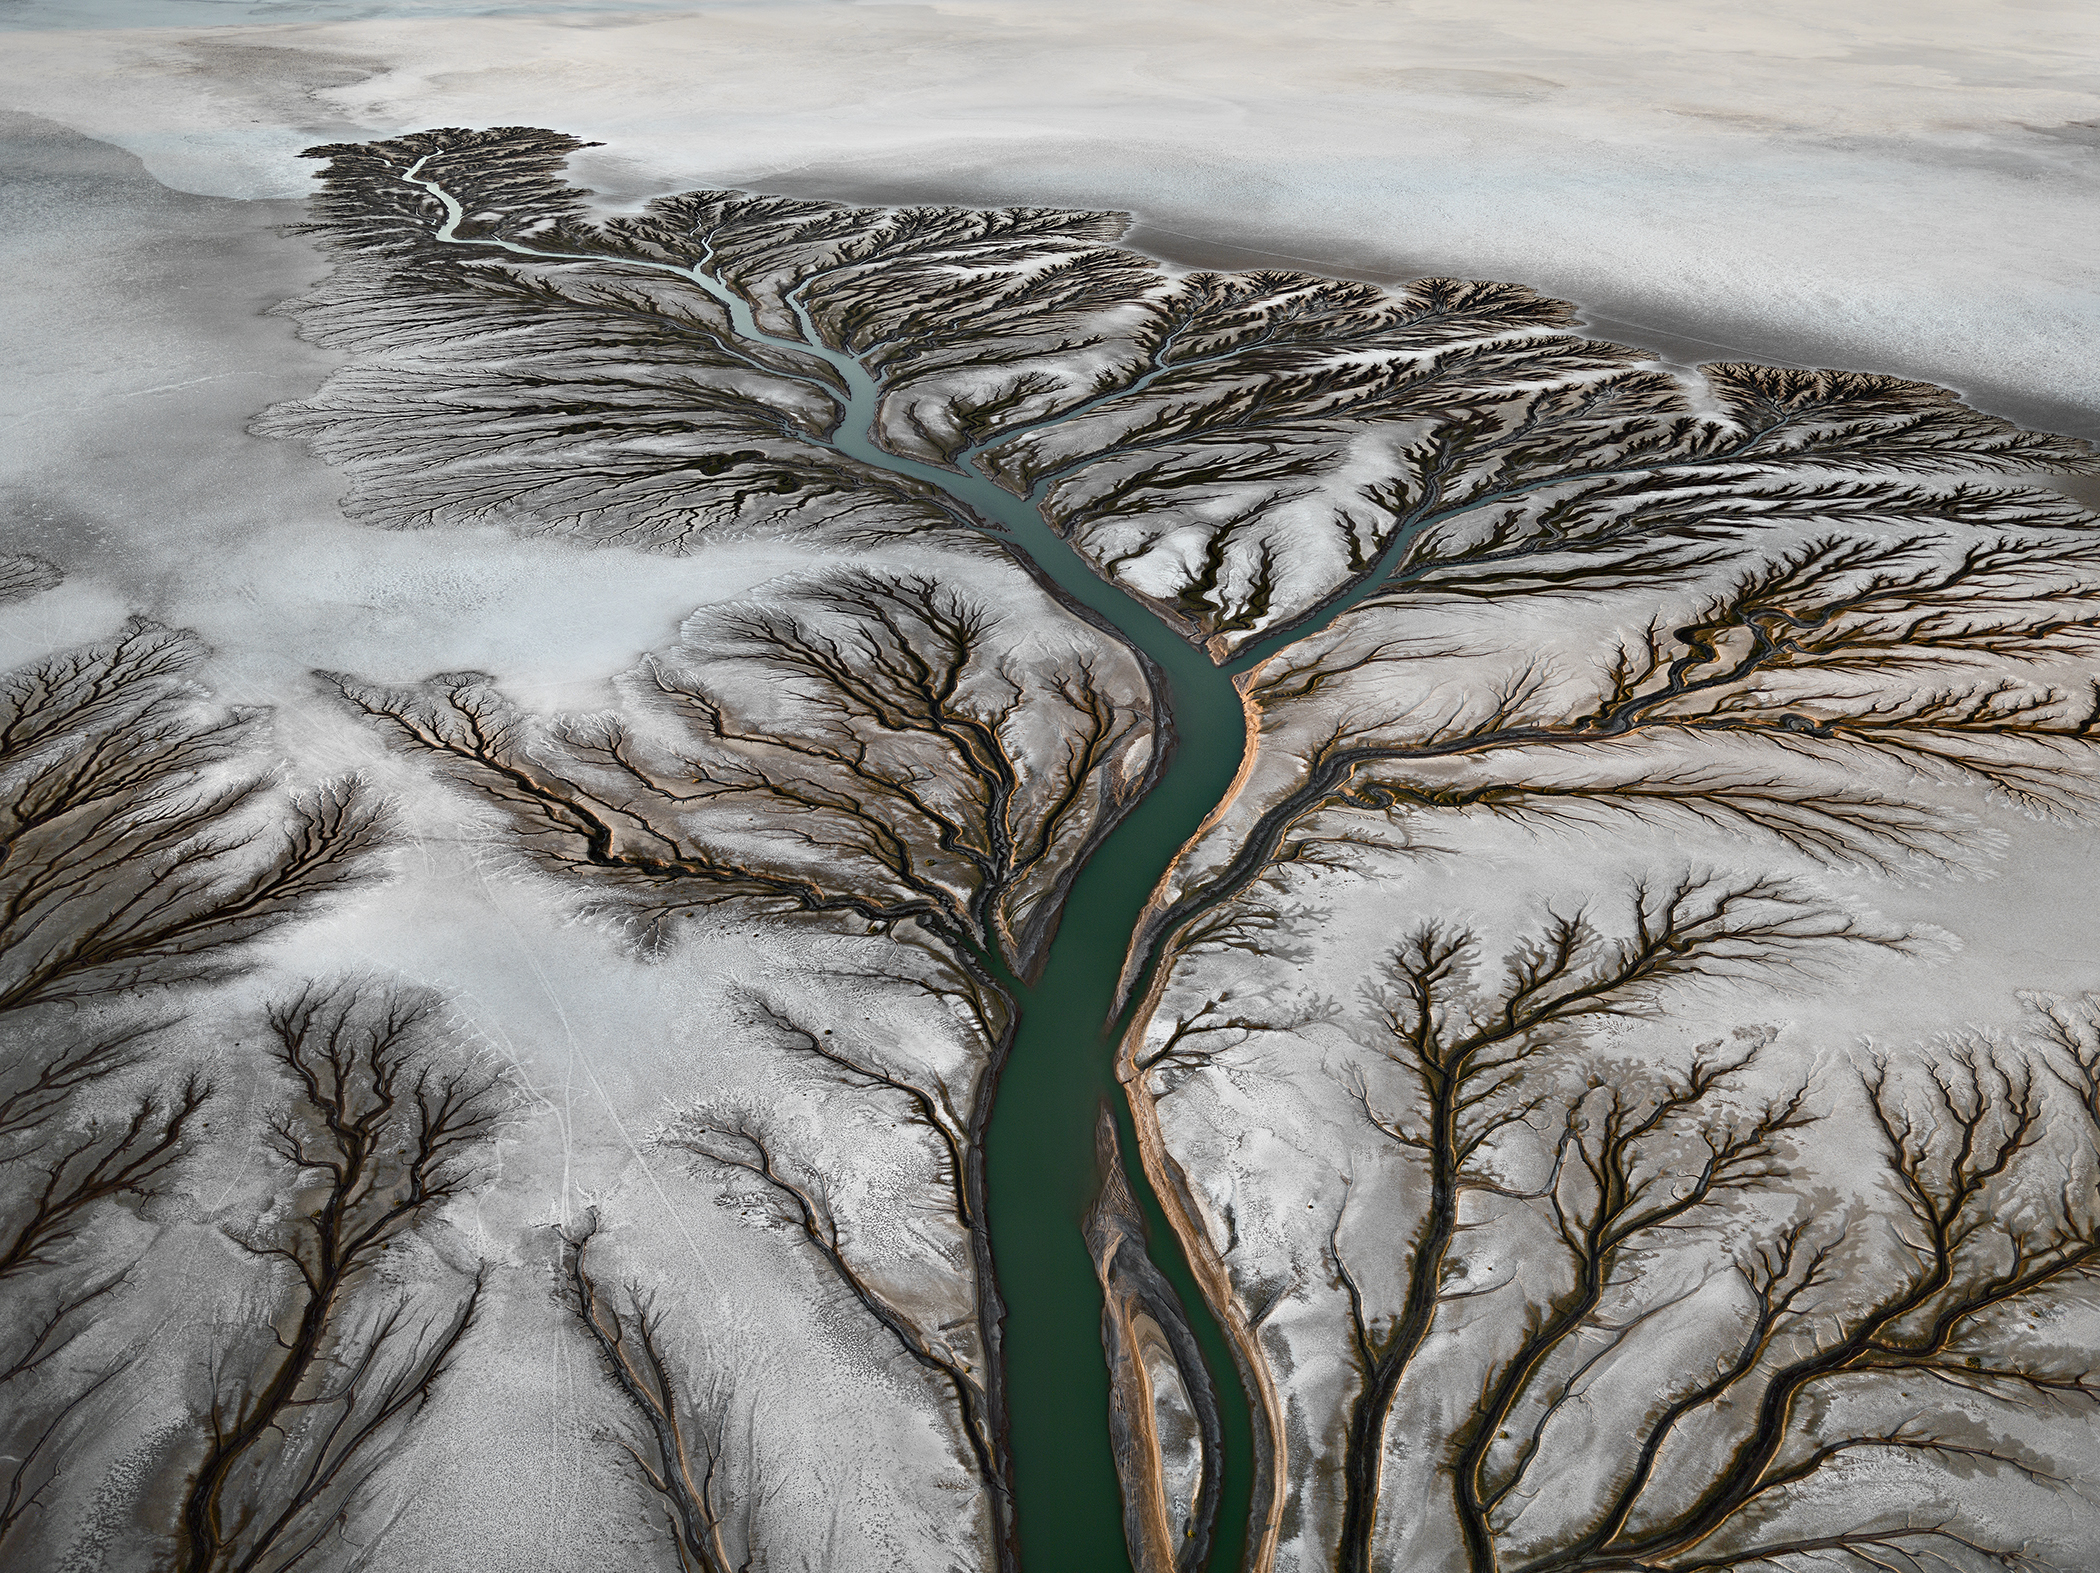 Colorado River Delta #2. 2011. From the series Water.